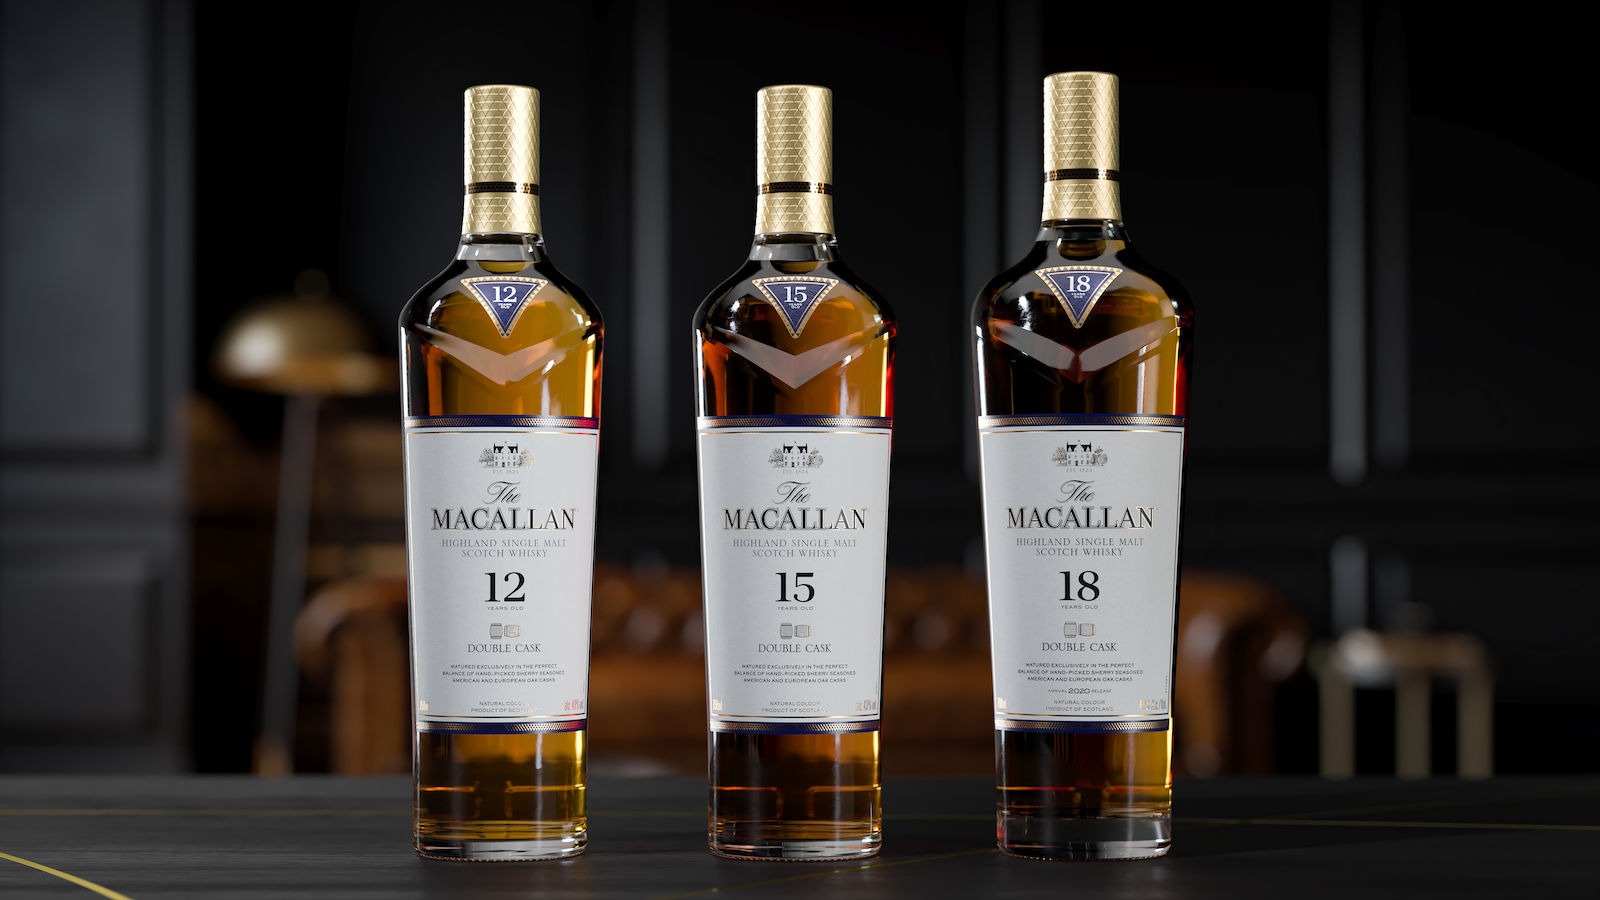 More Macallan Double Cask, Award-Winning Islay Scotch & More New Whisky